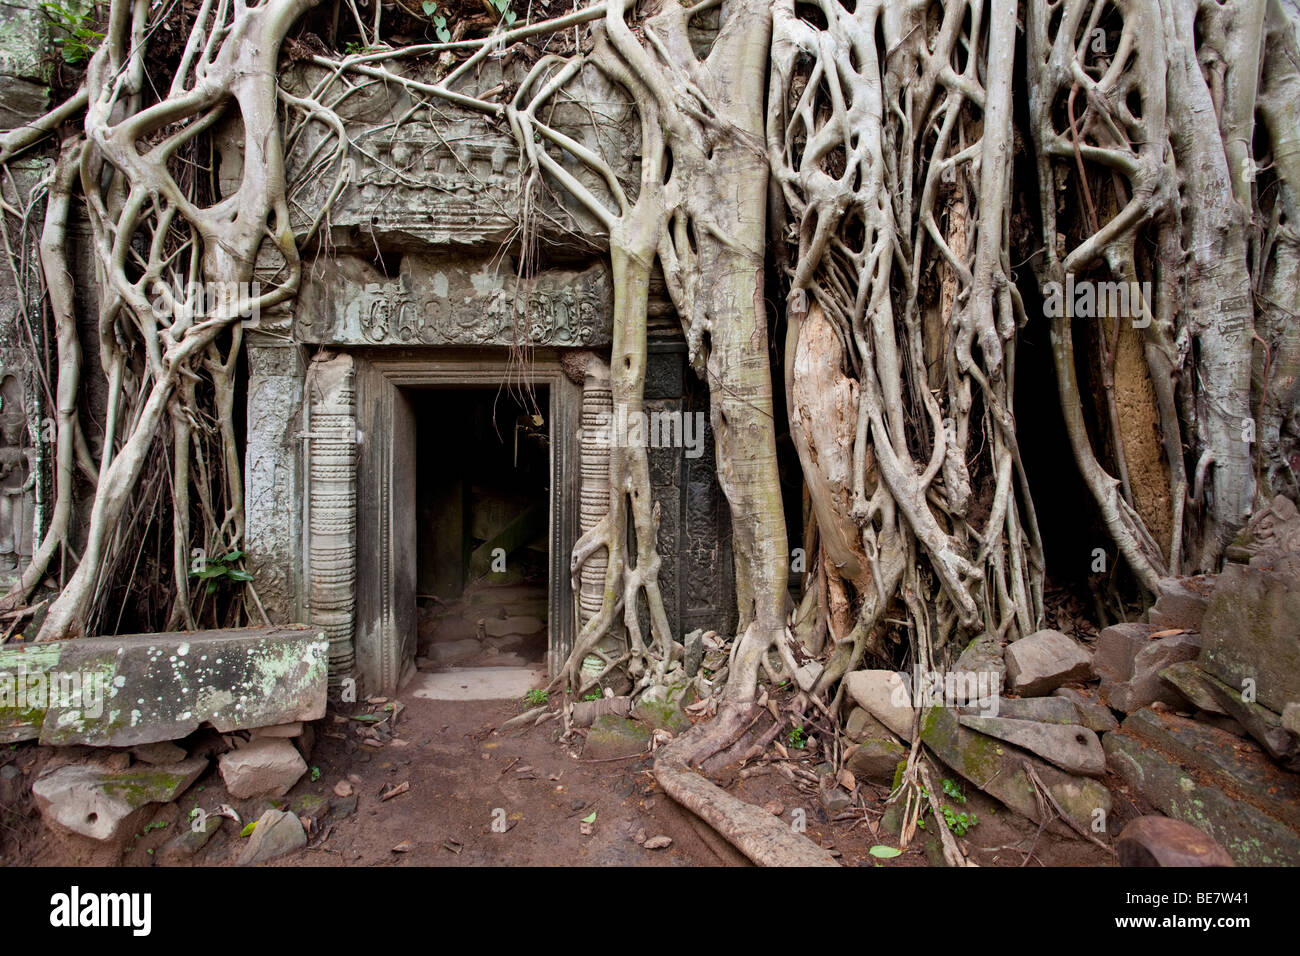 Iconic view at Ta Prohm in Angkor Wat complex, Cambodia - Stock Image